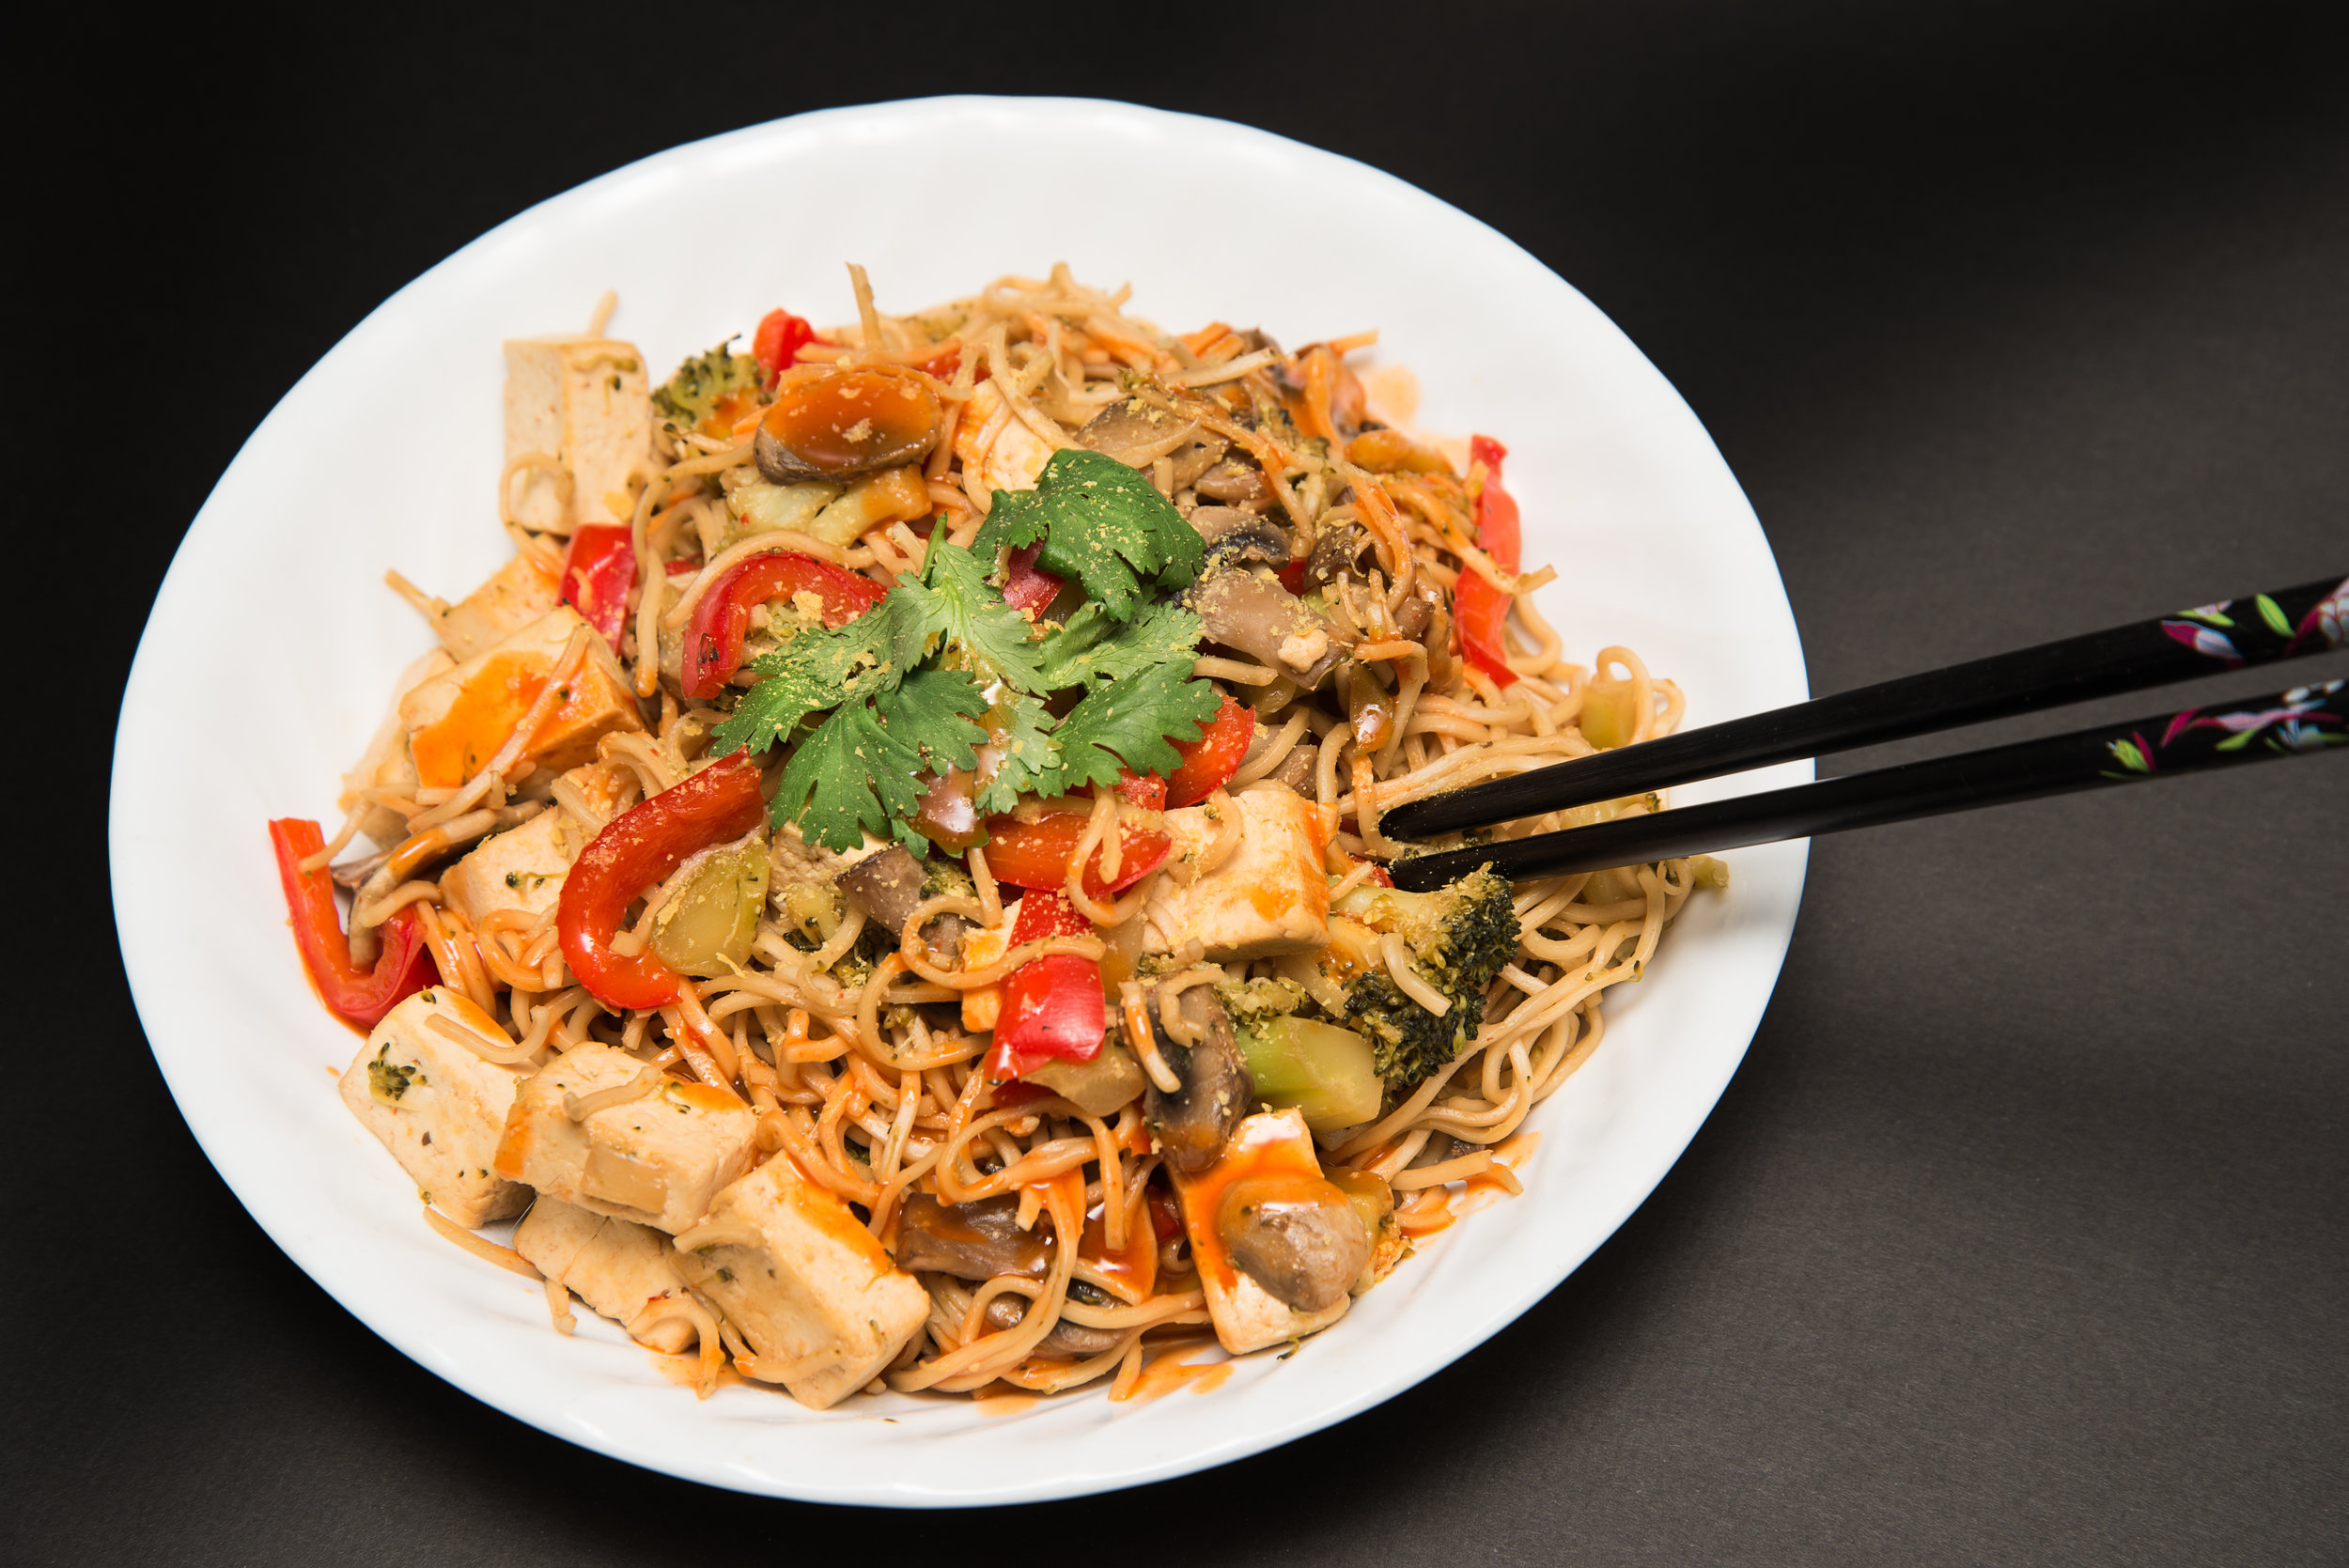 Tofu and veggies Stri Fry with noodles